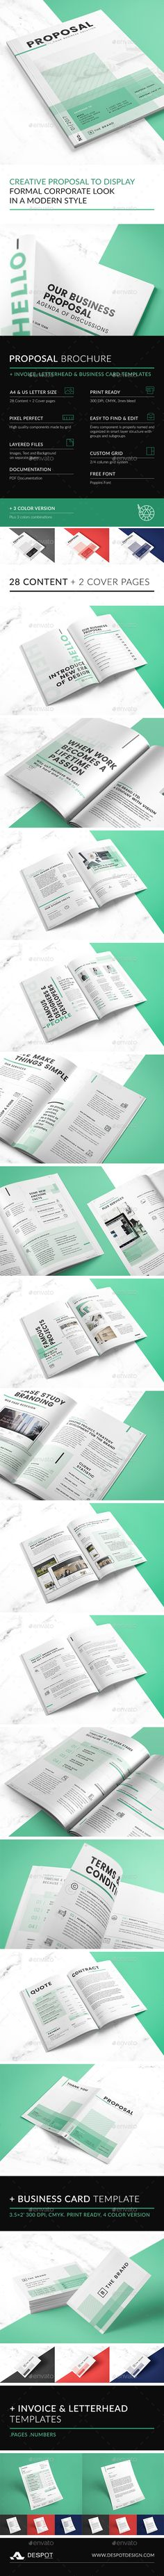 The Brand Proposal Template PSD Blue Corp